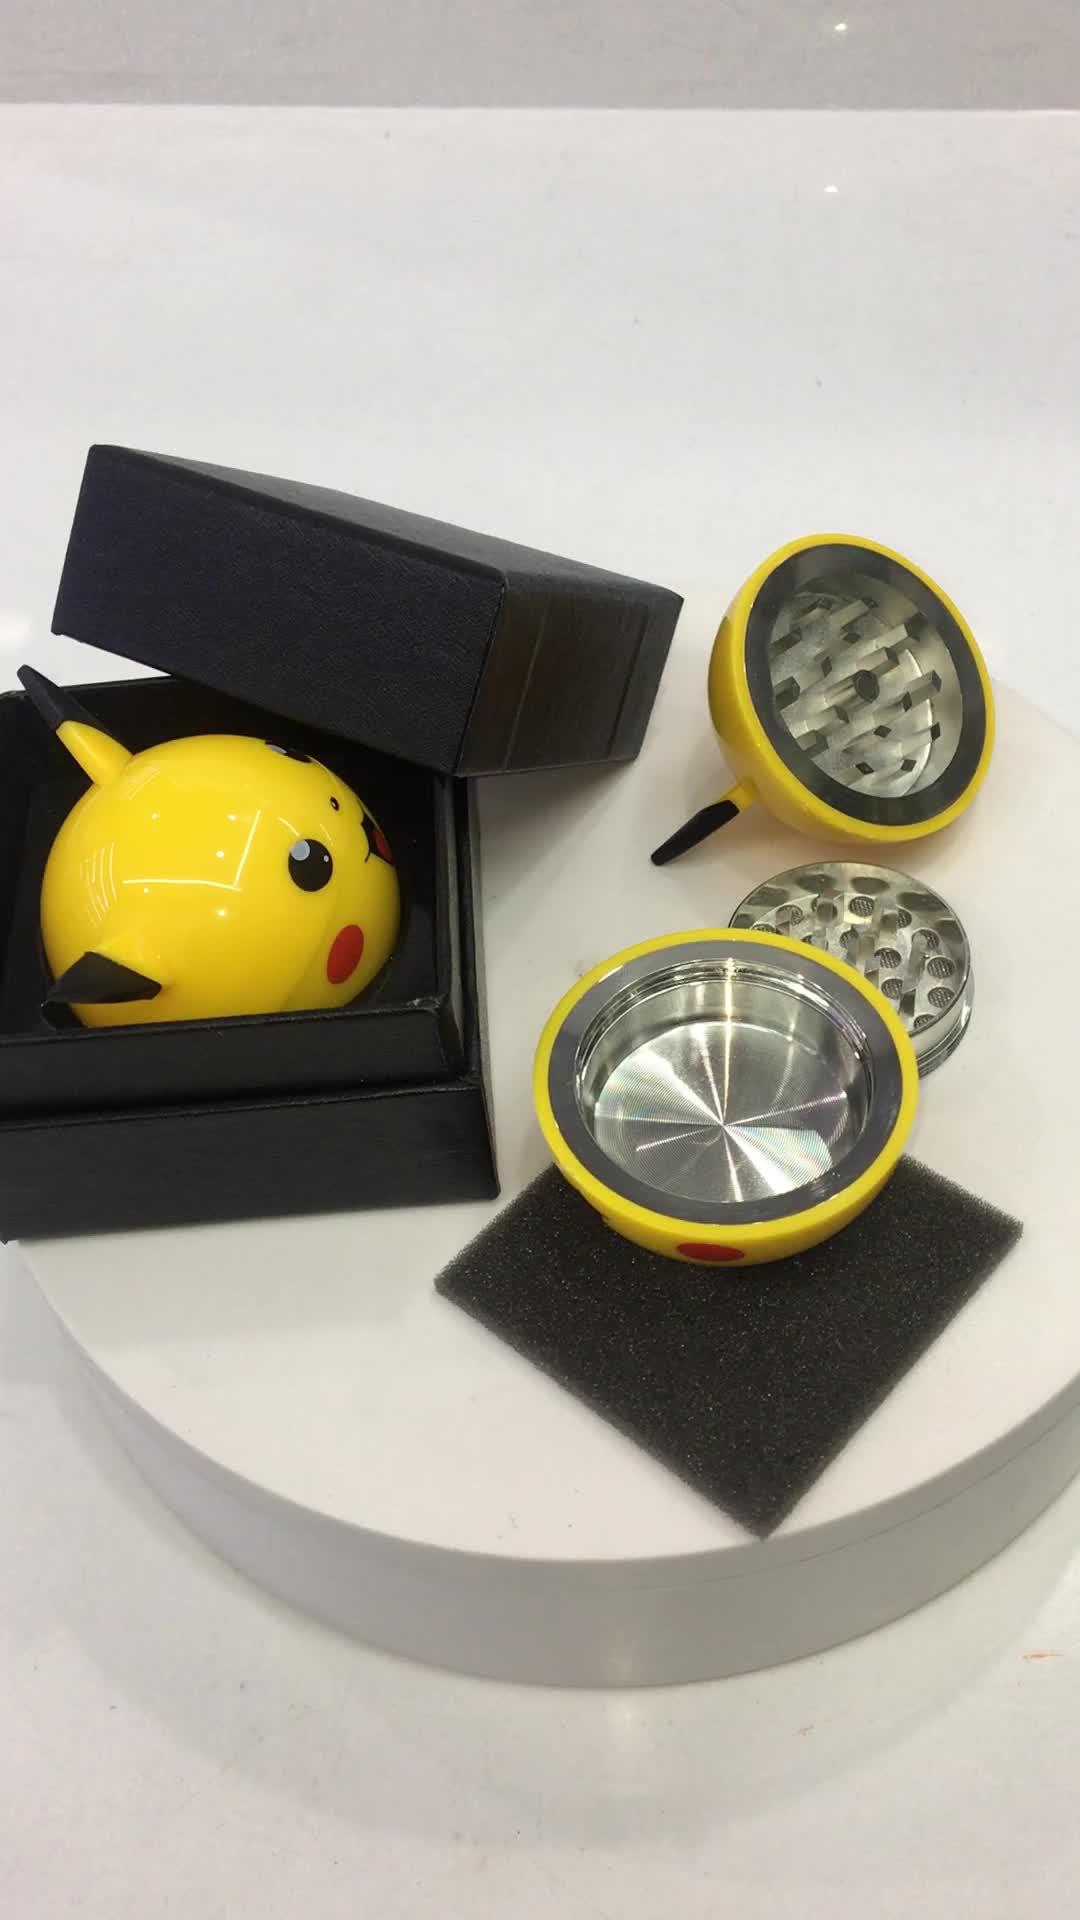 Erliao hot selling 3 piece 55mm Pikachu tobacco herb grinder with gift box